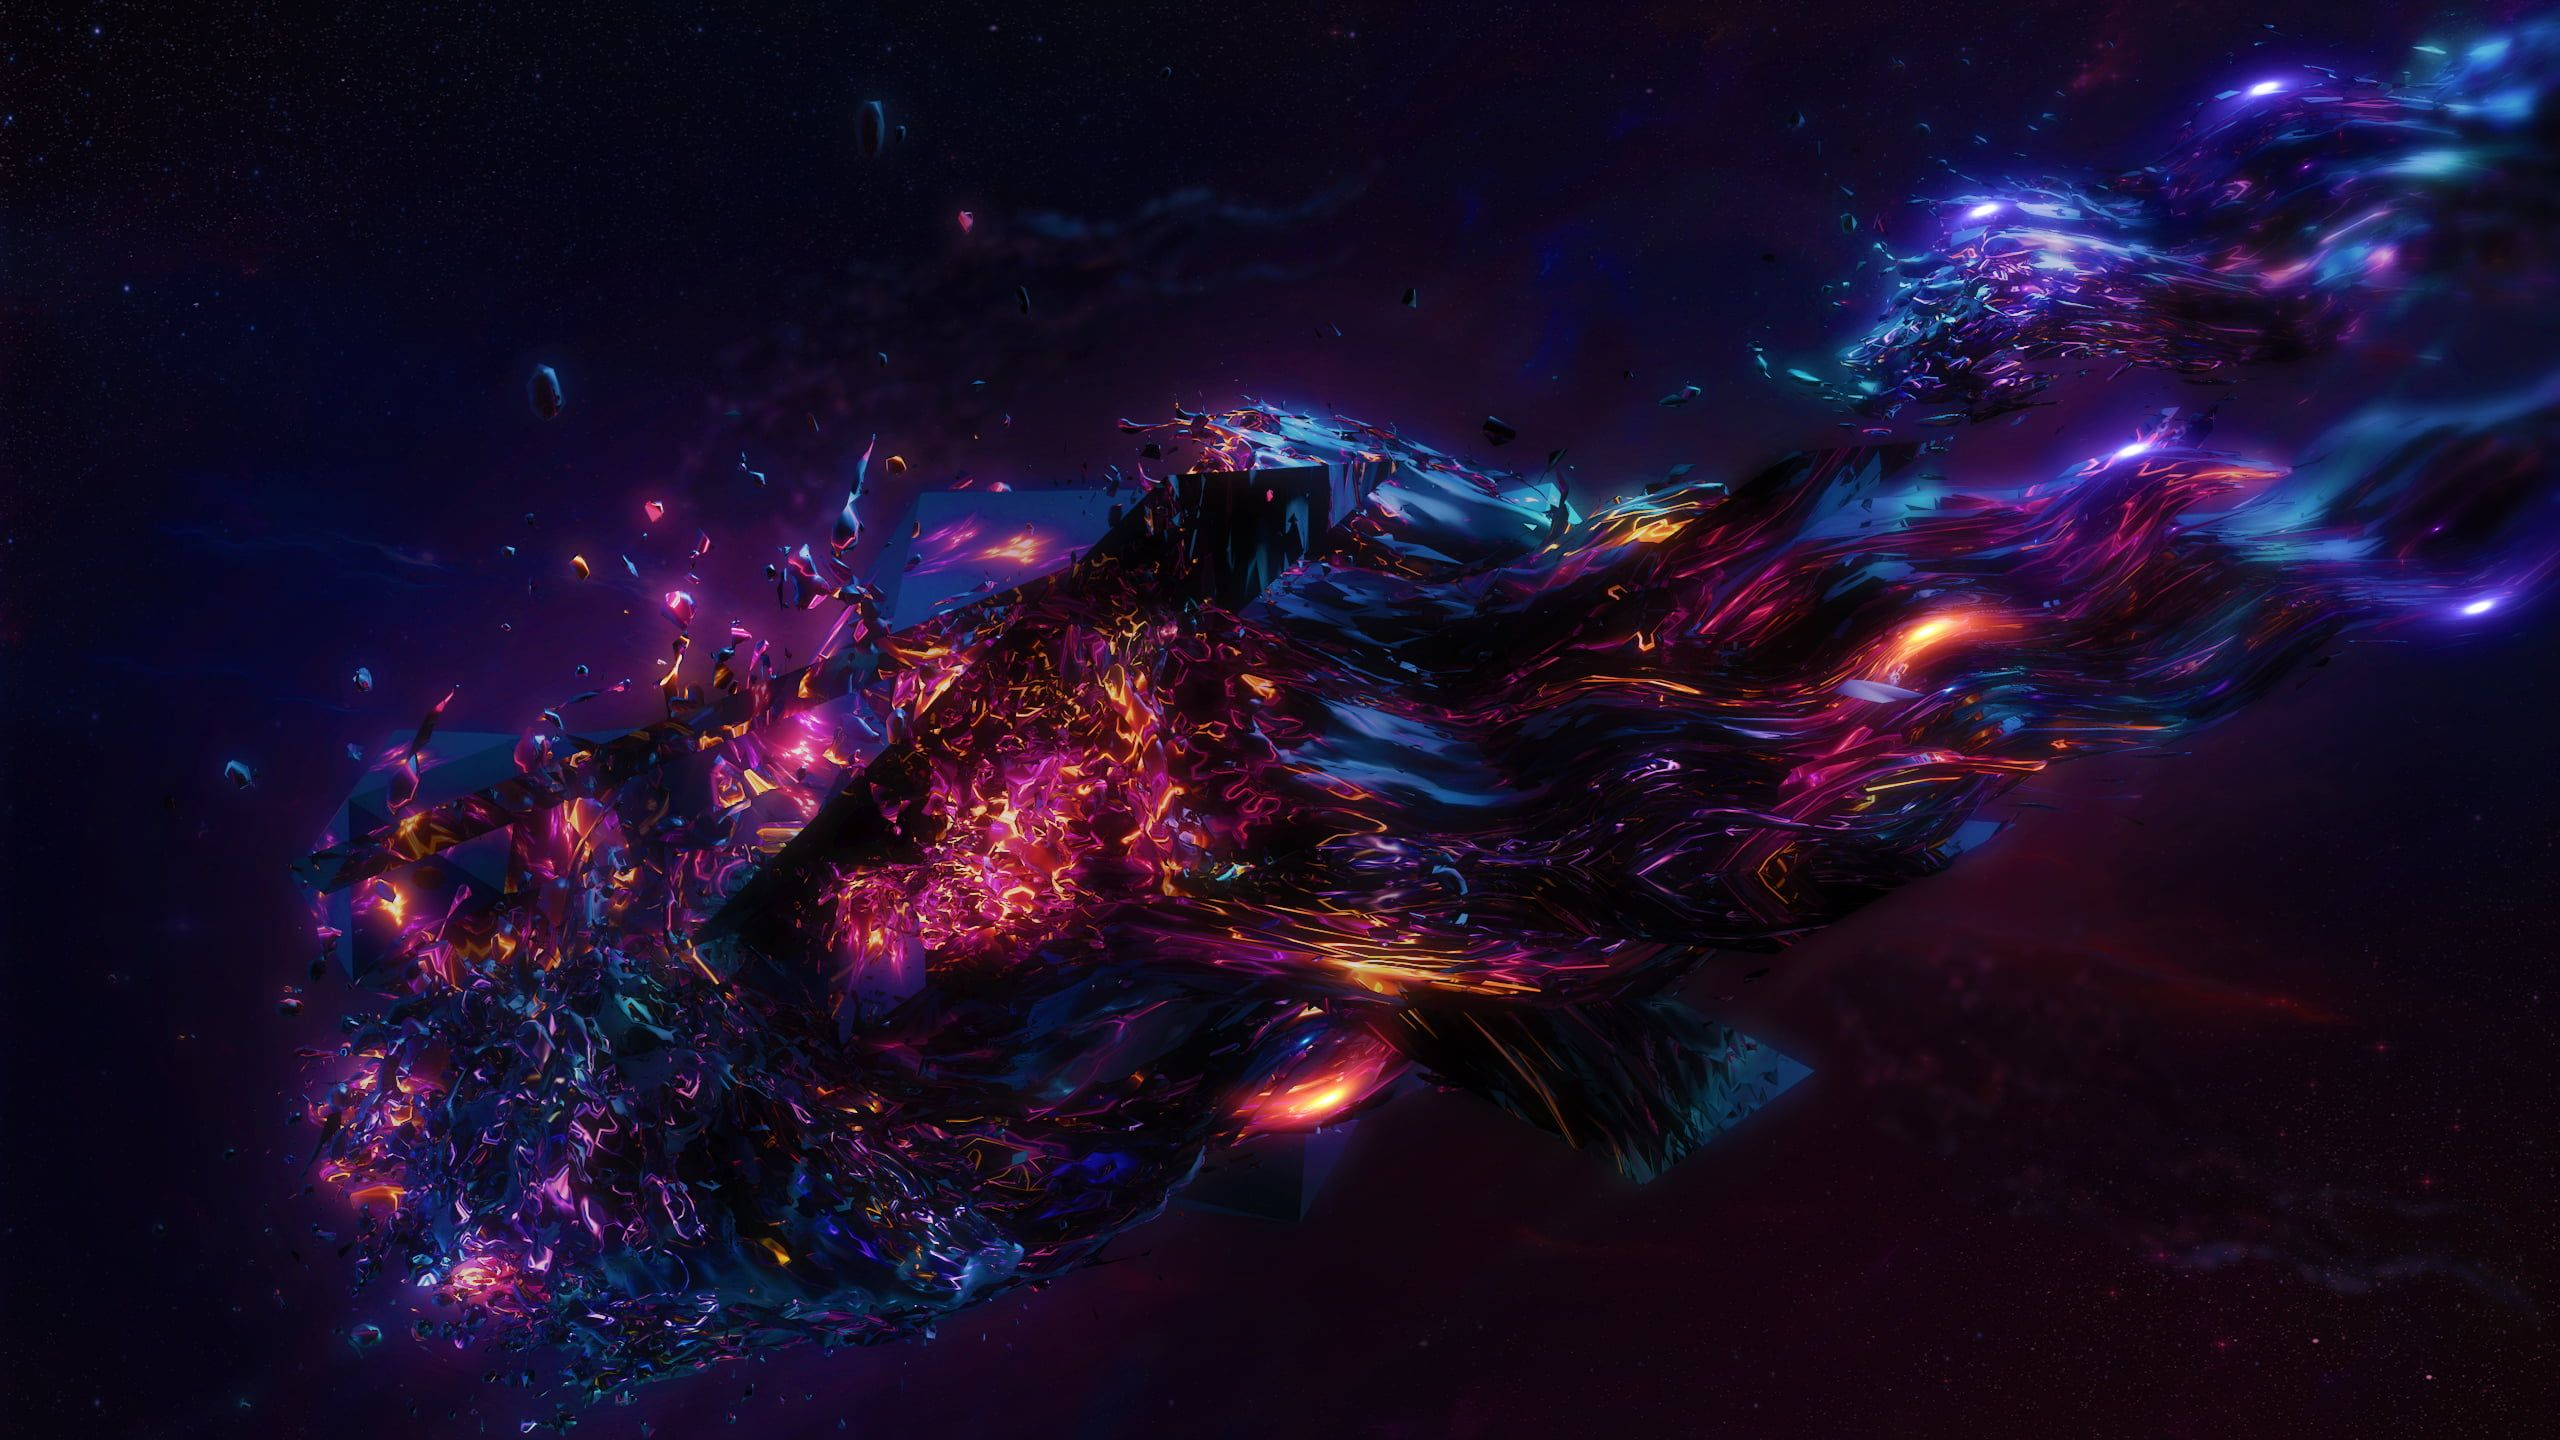 blue, purple, and orange digital wallpaper abstract 3D